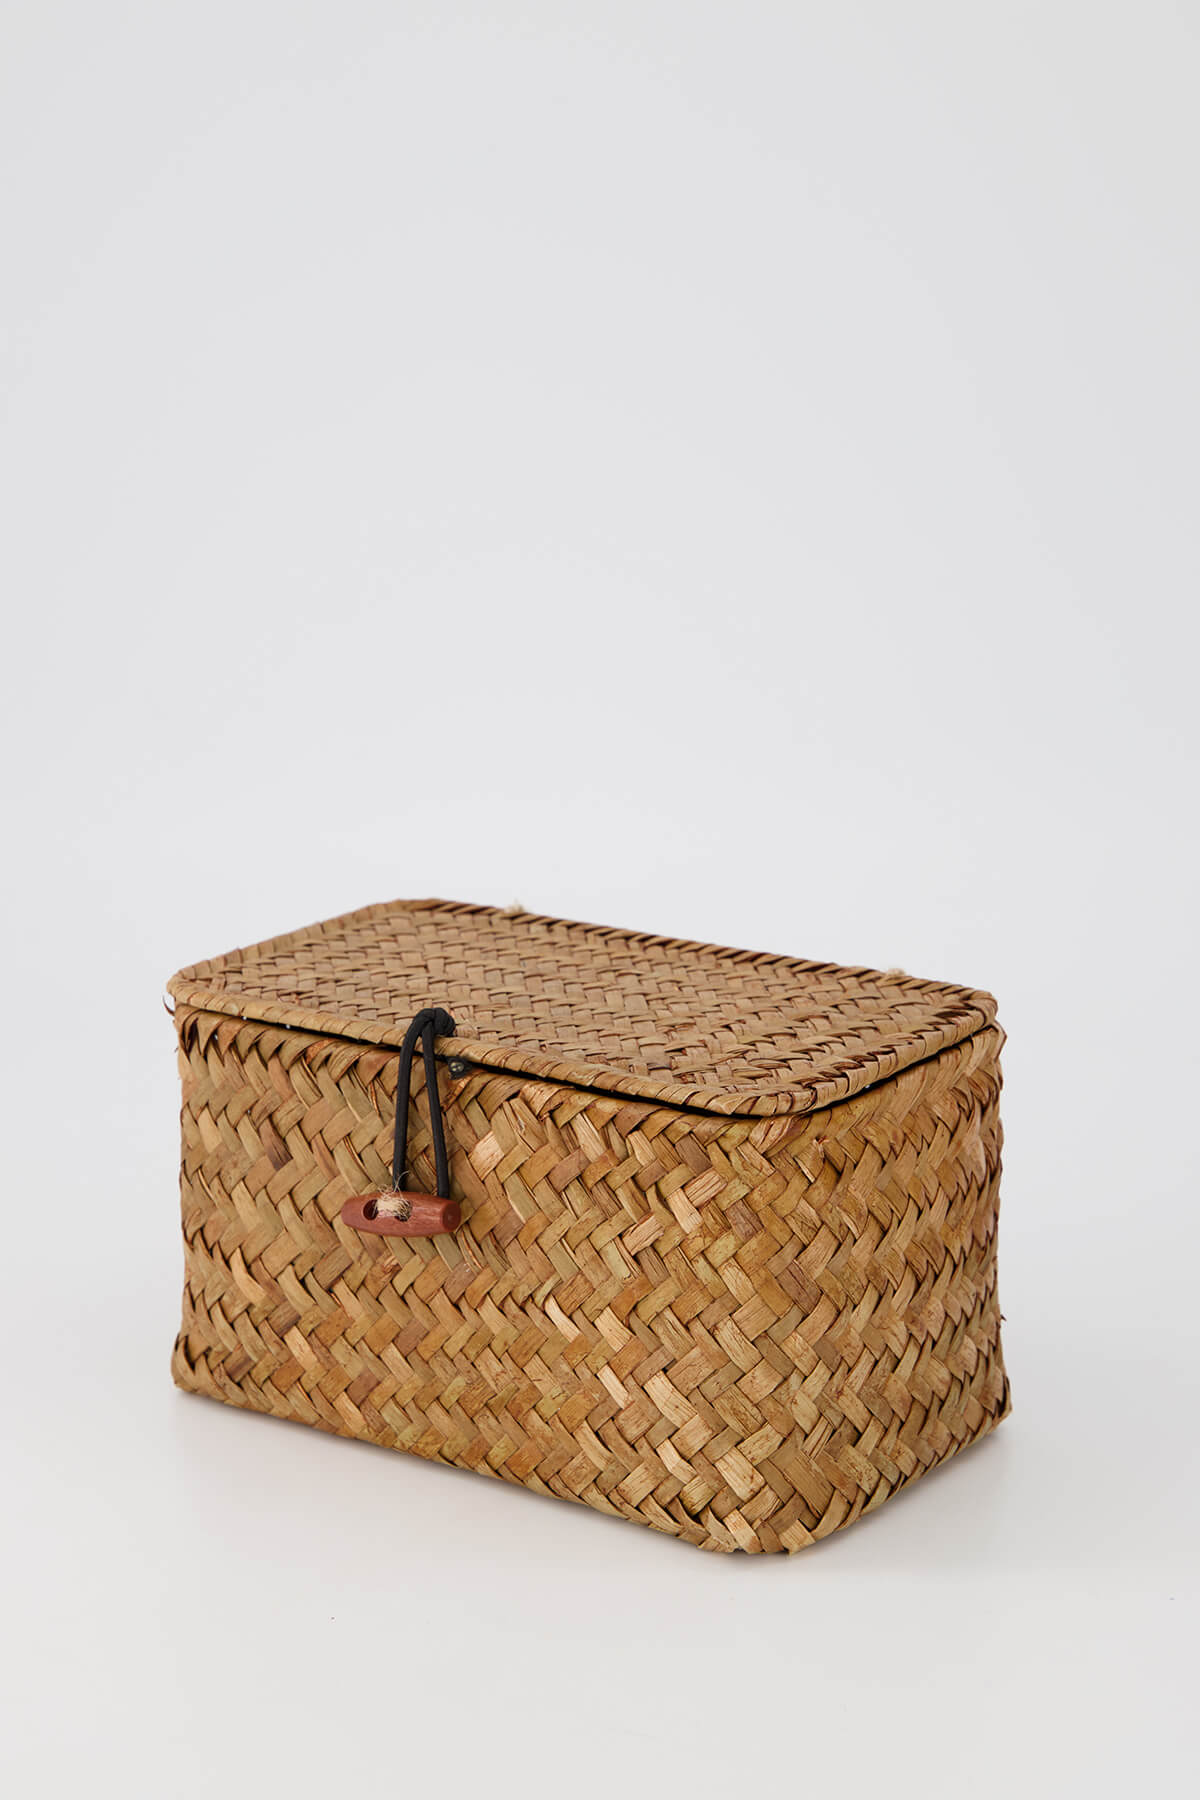 Weaved basket product photography automated